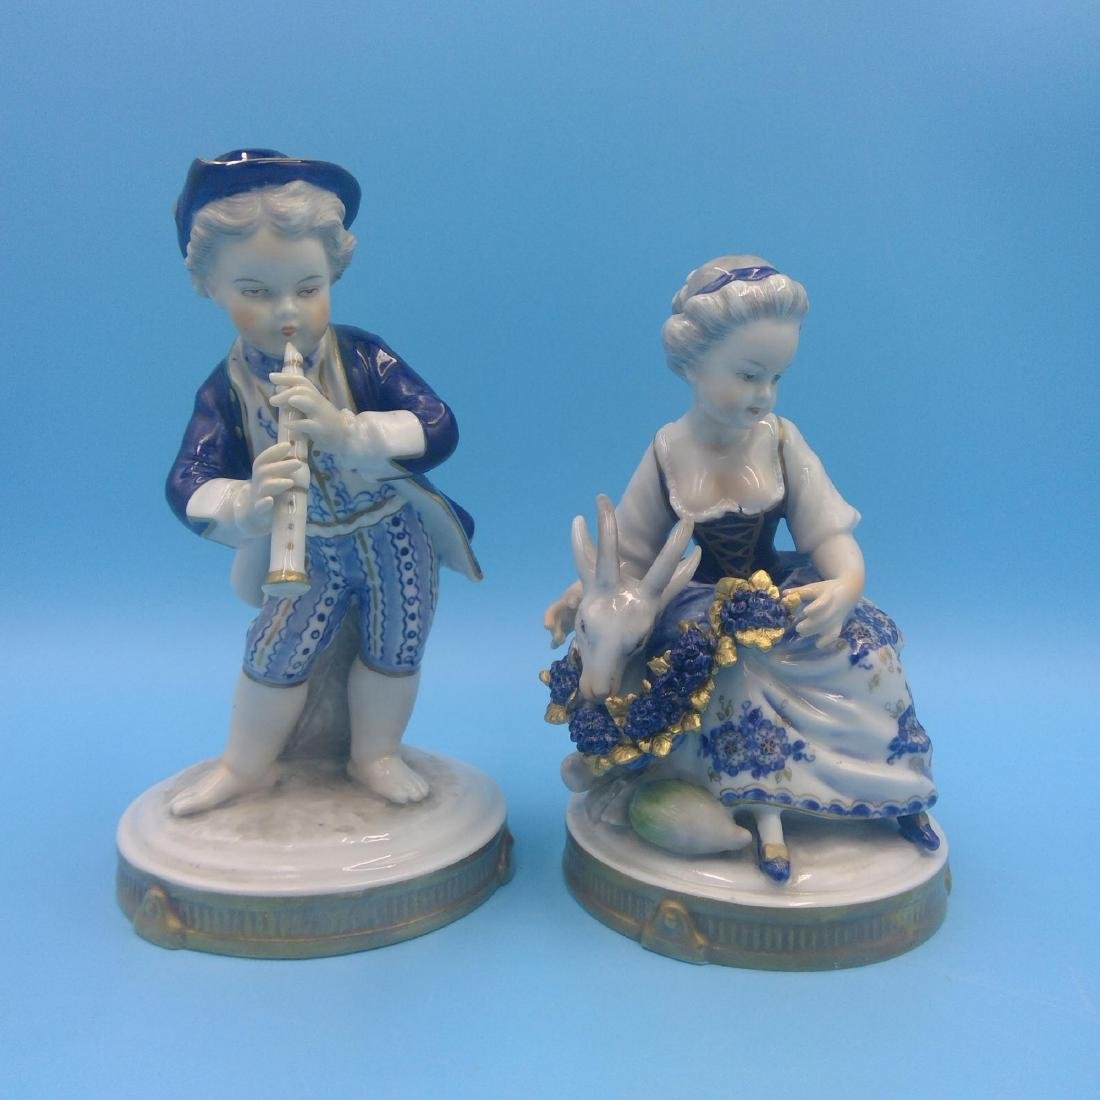 GROUP OF 4 ANTIQUE GERMAN PORCELAIN FIGURINES - 5